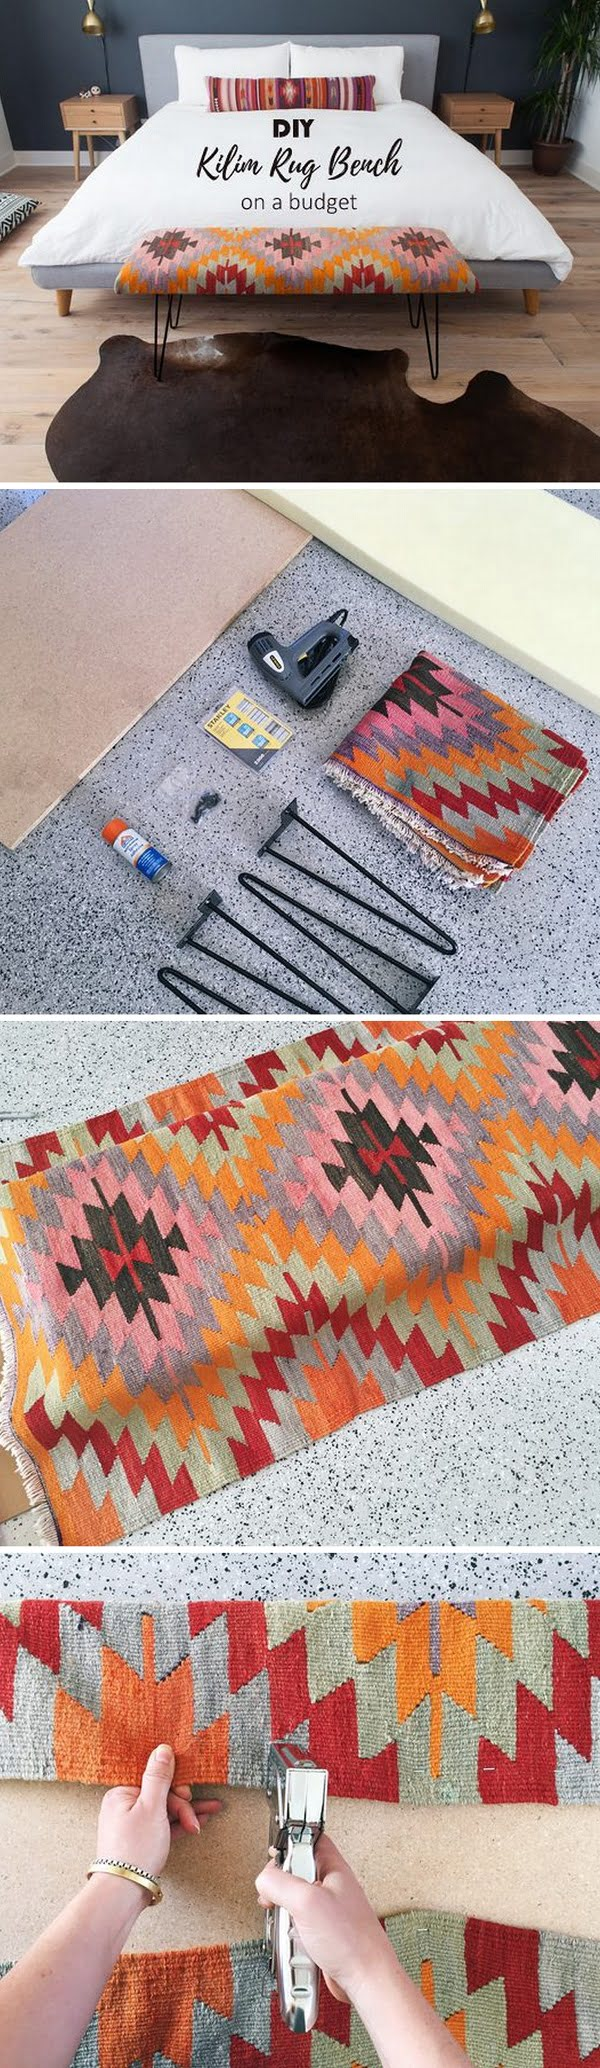 Check out this easy idea on how to make a #DIY kilim rug bench for #homedecor on a #budget #project #crafts